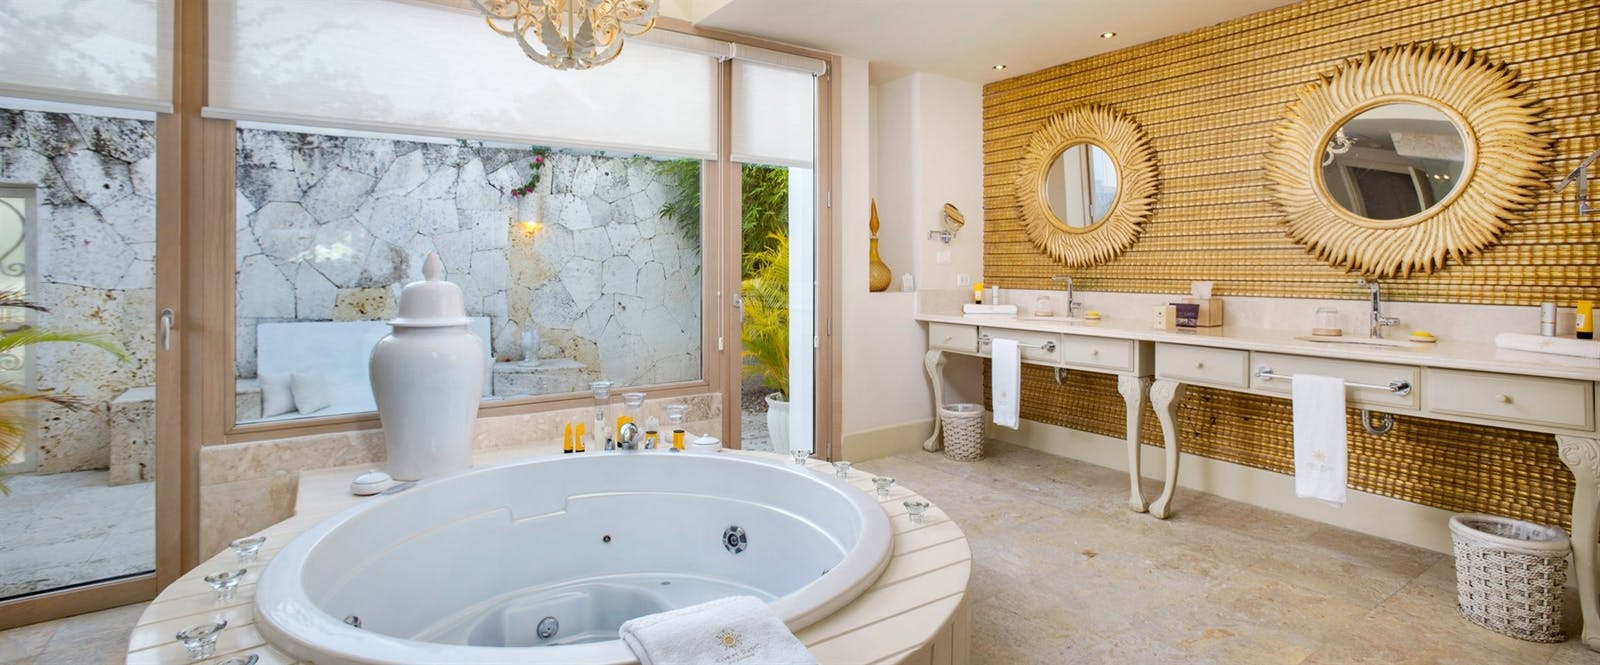 Four Bedroom Imperial Villa Master Bathroom at Eden Roc at Cap Cana Boutique Suites & Beach Club, Dominican Republic